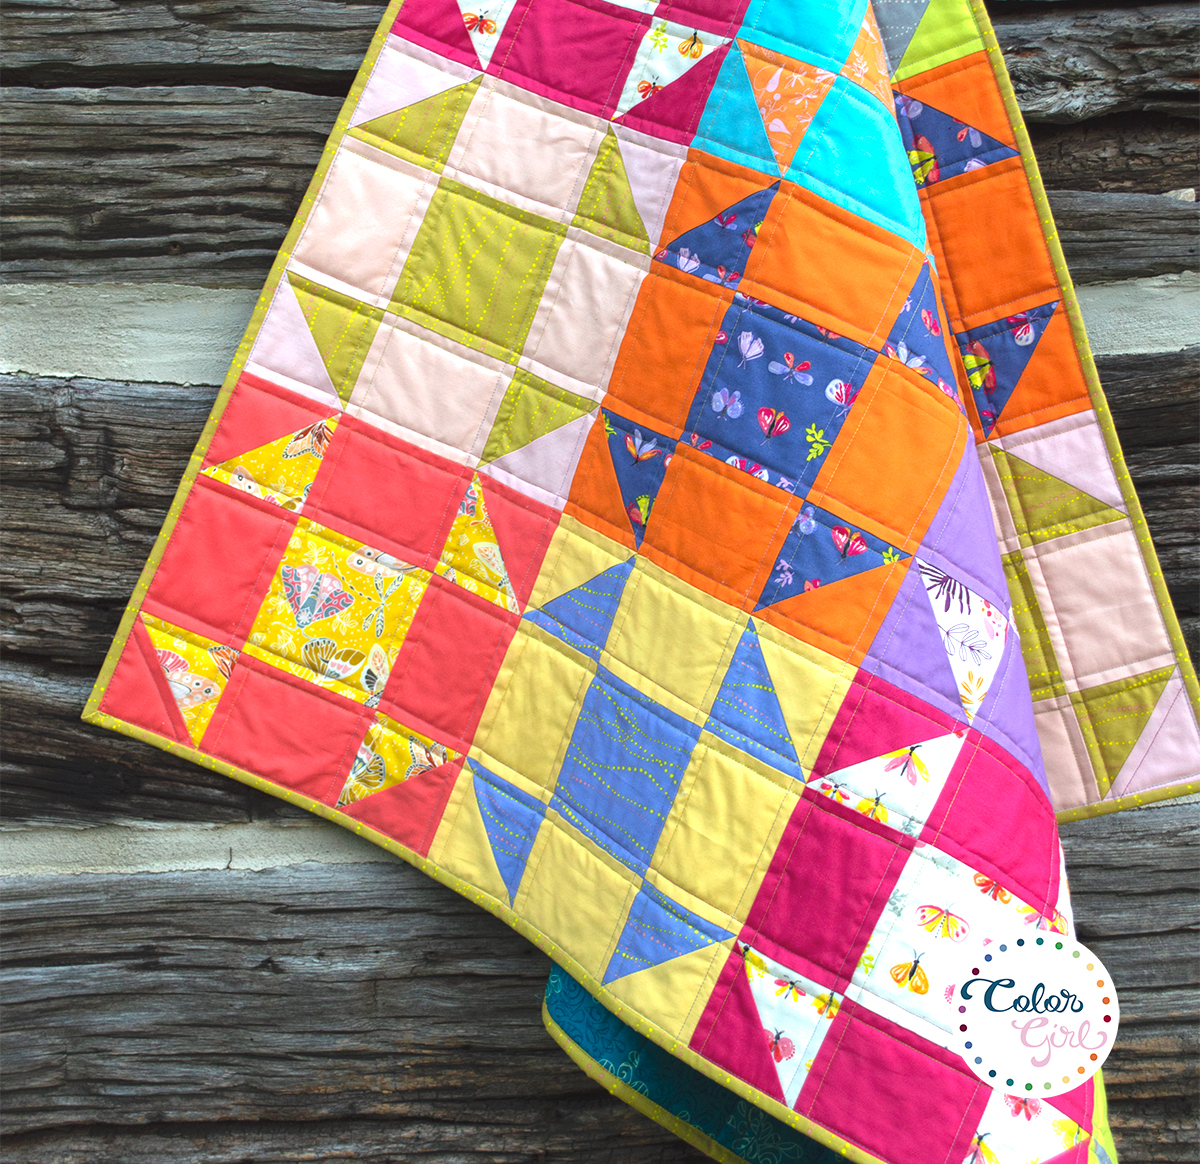 easy baby quilt video tutorial by Color Girl Quilts